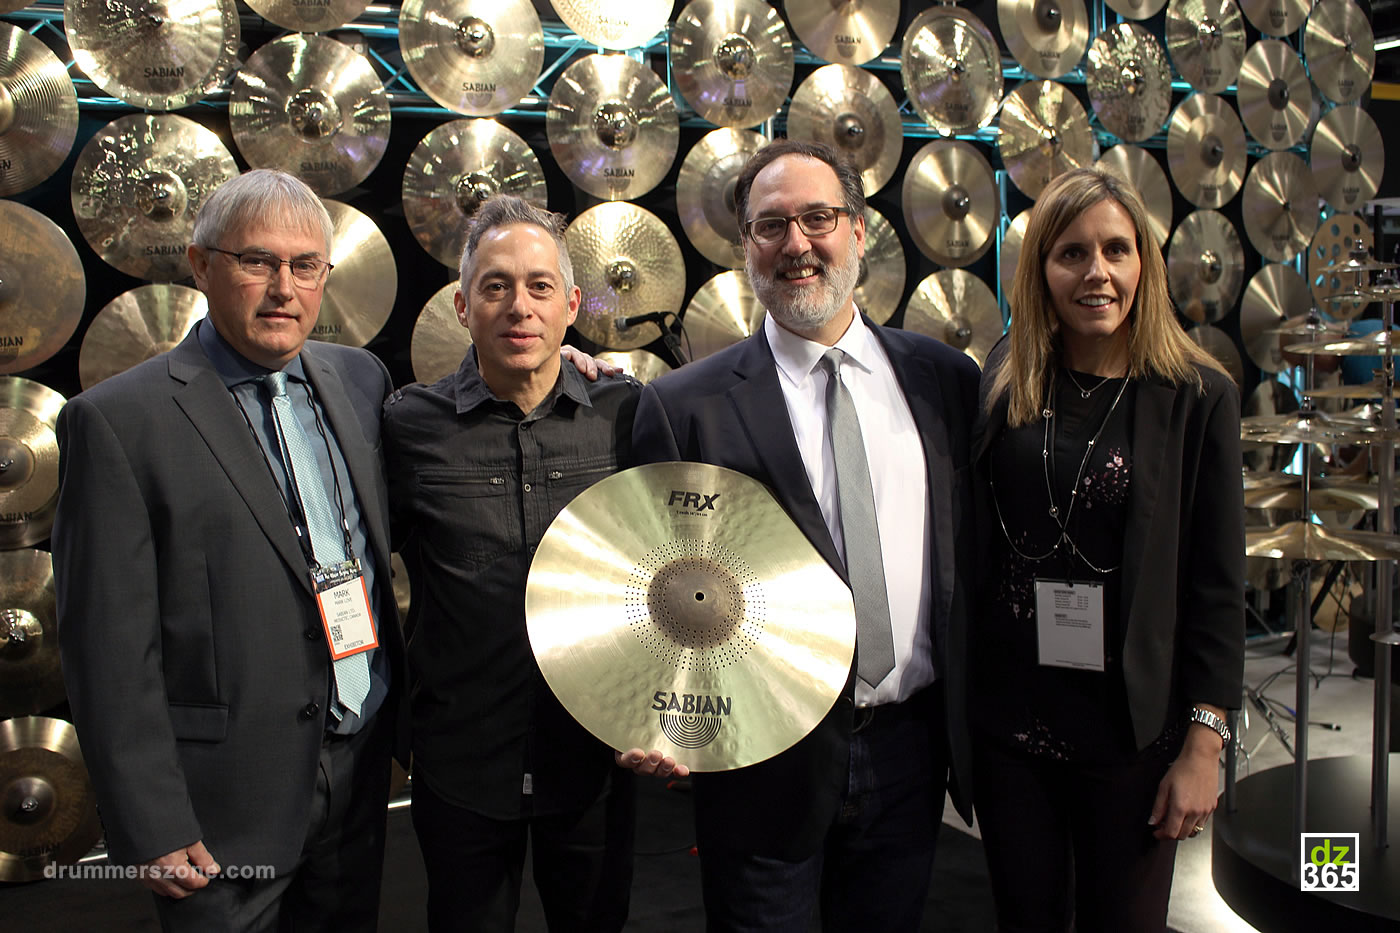 The proud Sabian team at Winter NAMM 2018: fltr Mark Love, Luis Cardoso, Andy Zildjian and Stacey Montgomery-Clark